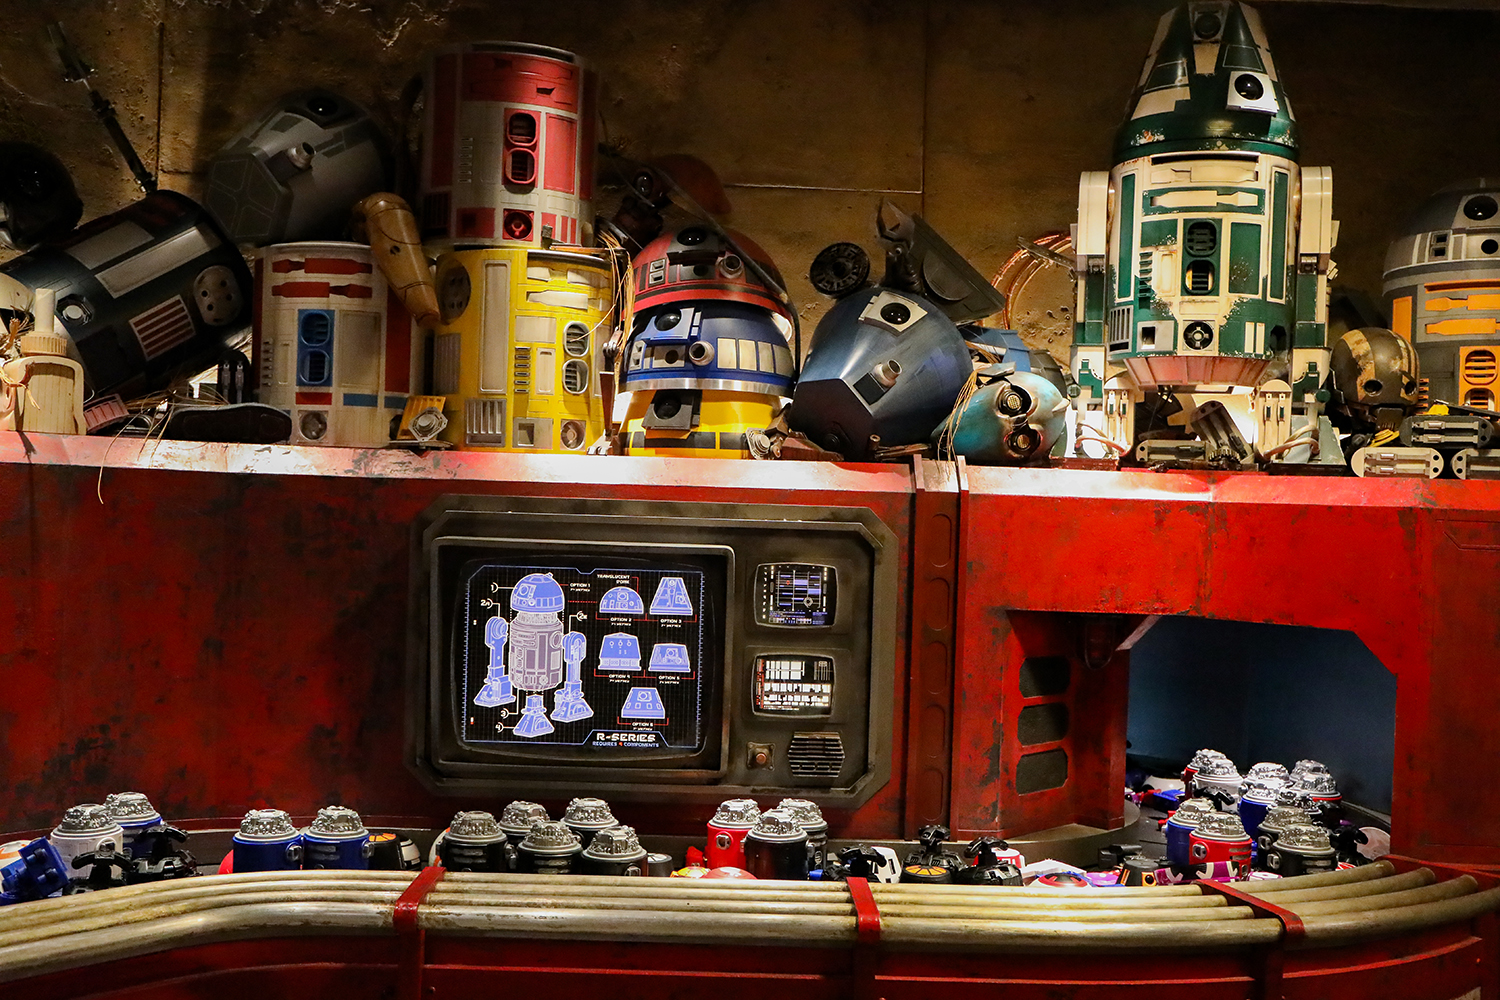 Want to get the details on the Droid Experience inside Star Wars Land? This has all the info!